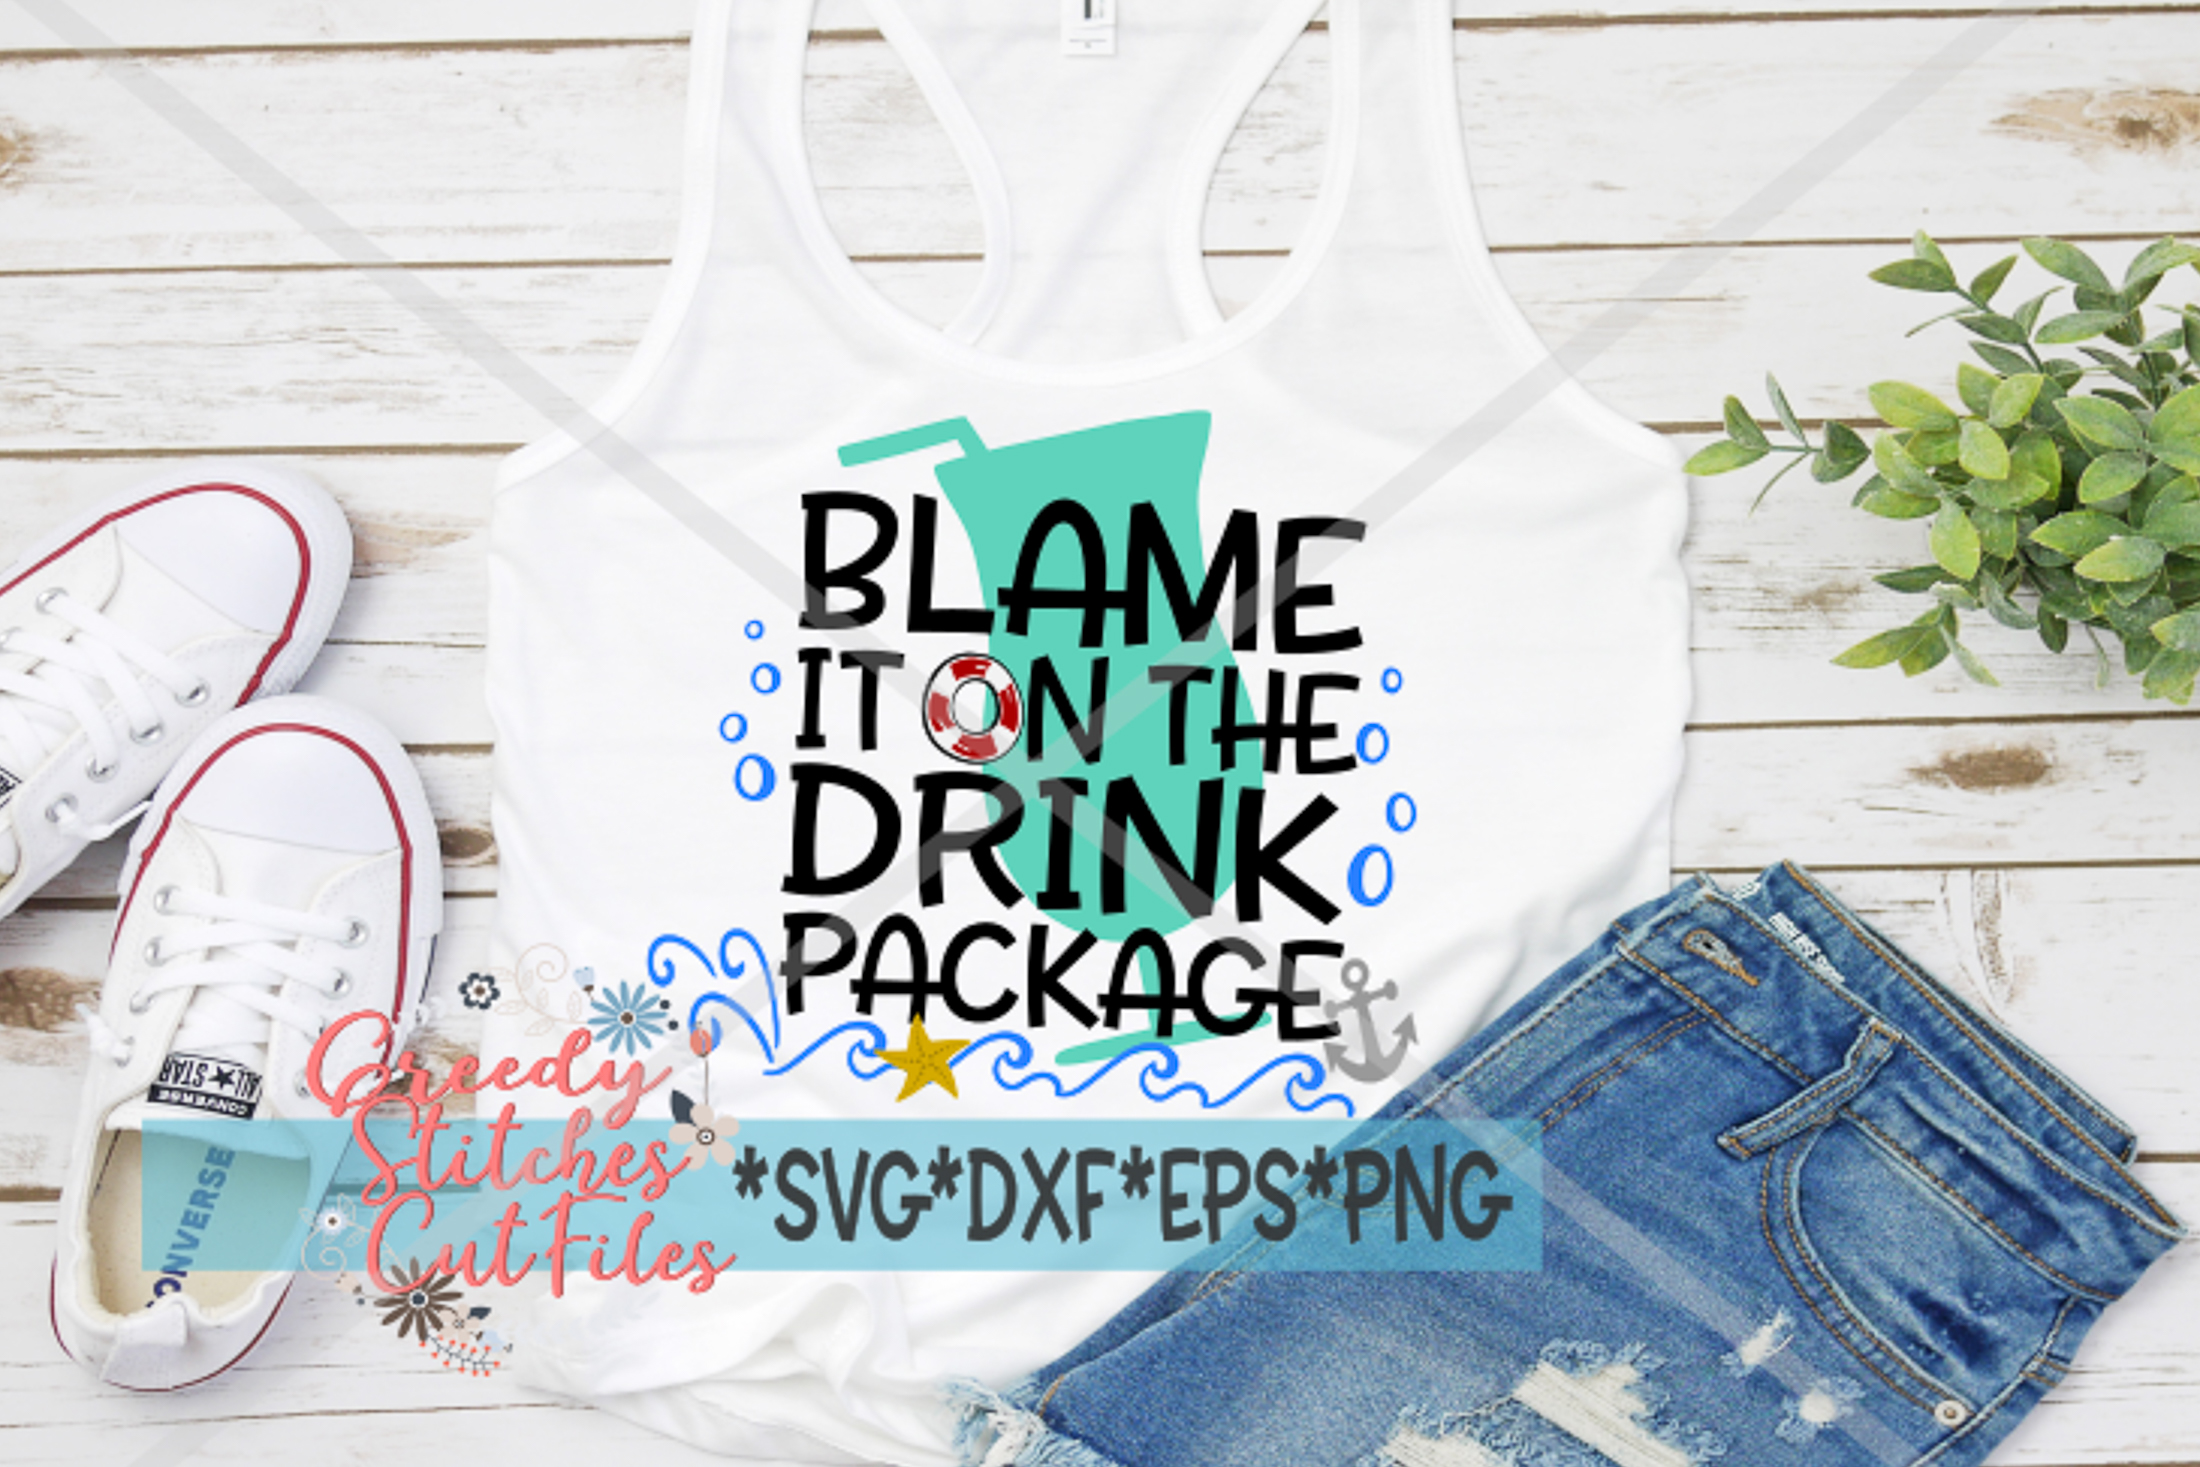 Blame It On The Drink Package Cruise SVG DXF EPS PNG example image 4